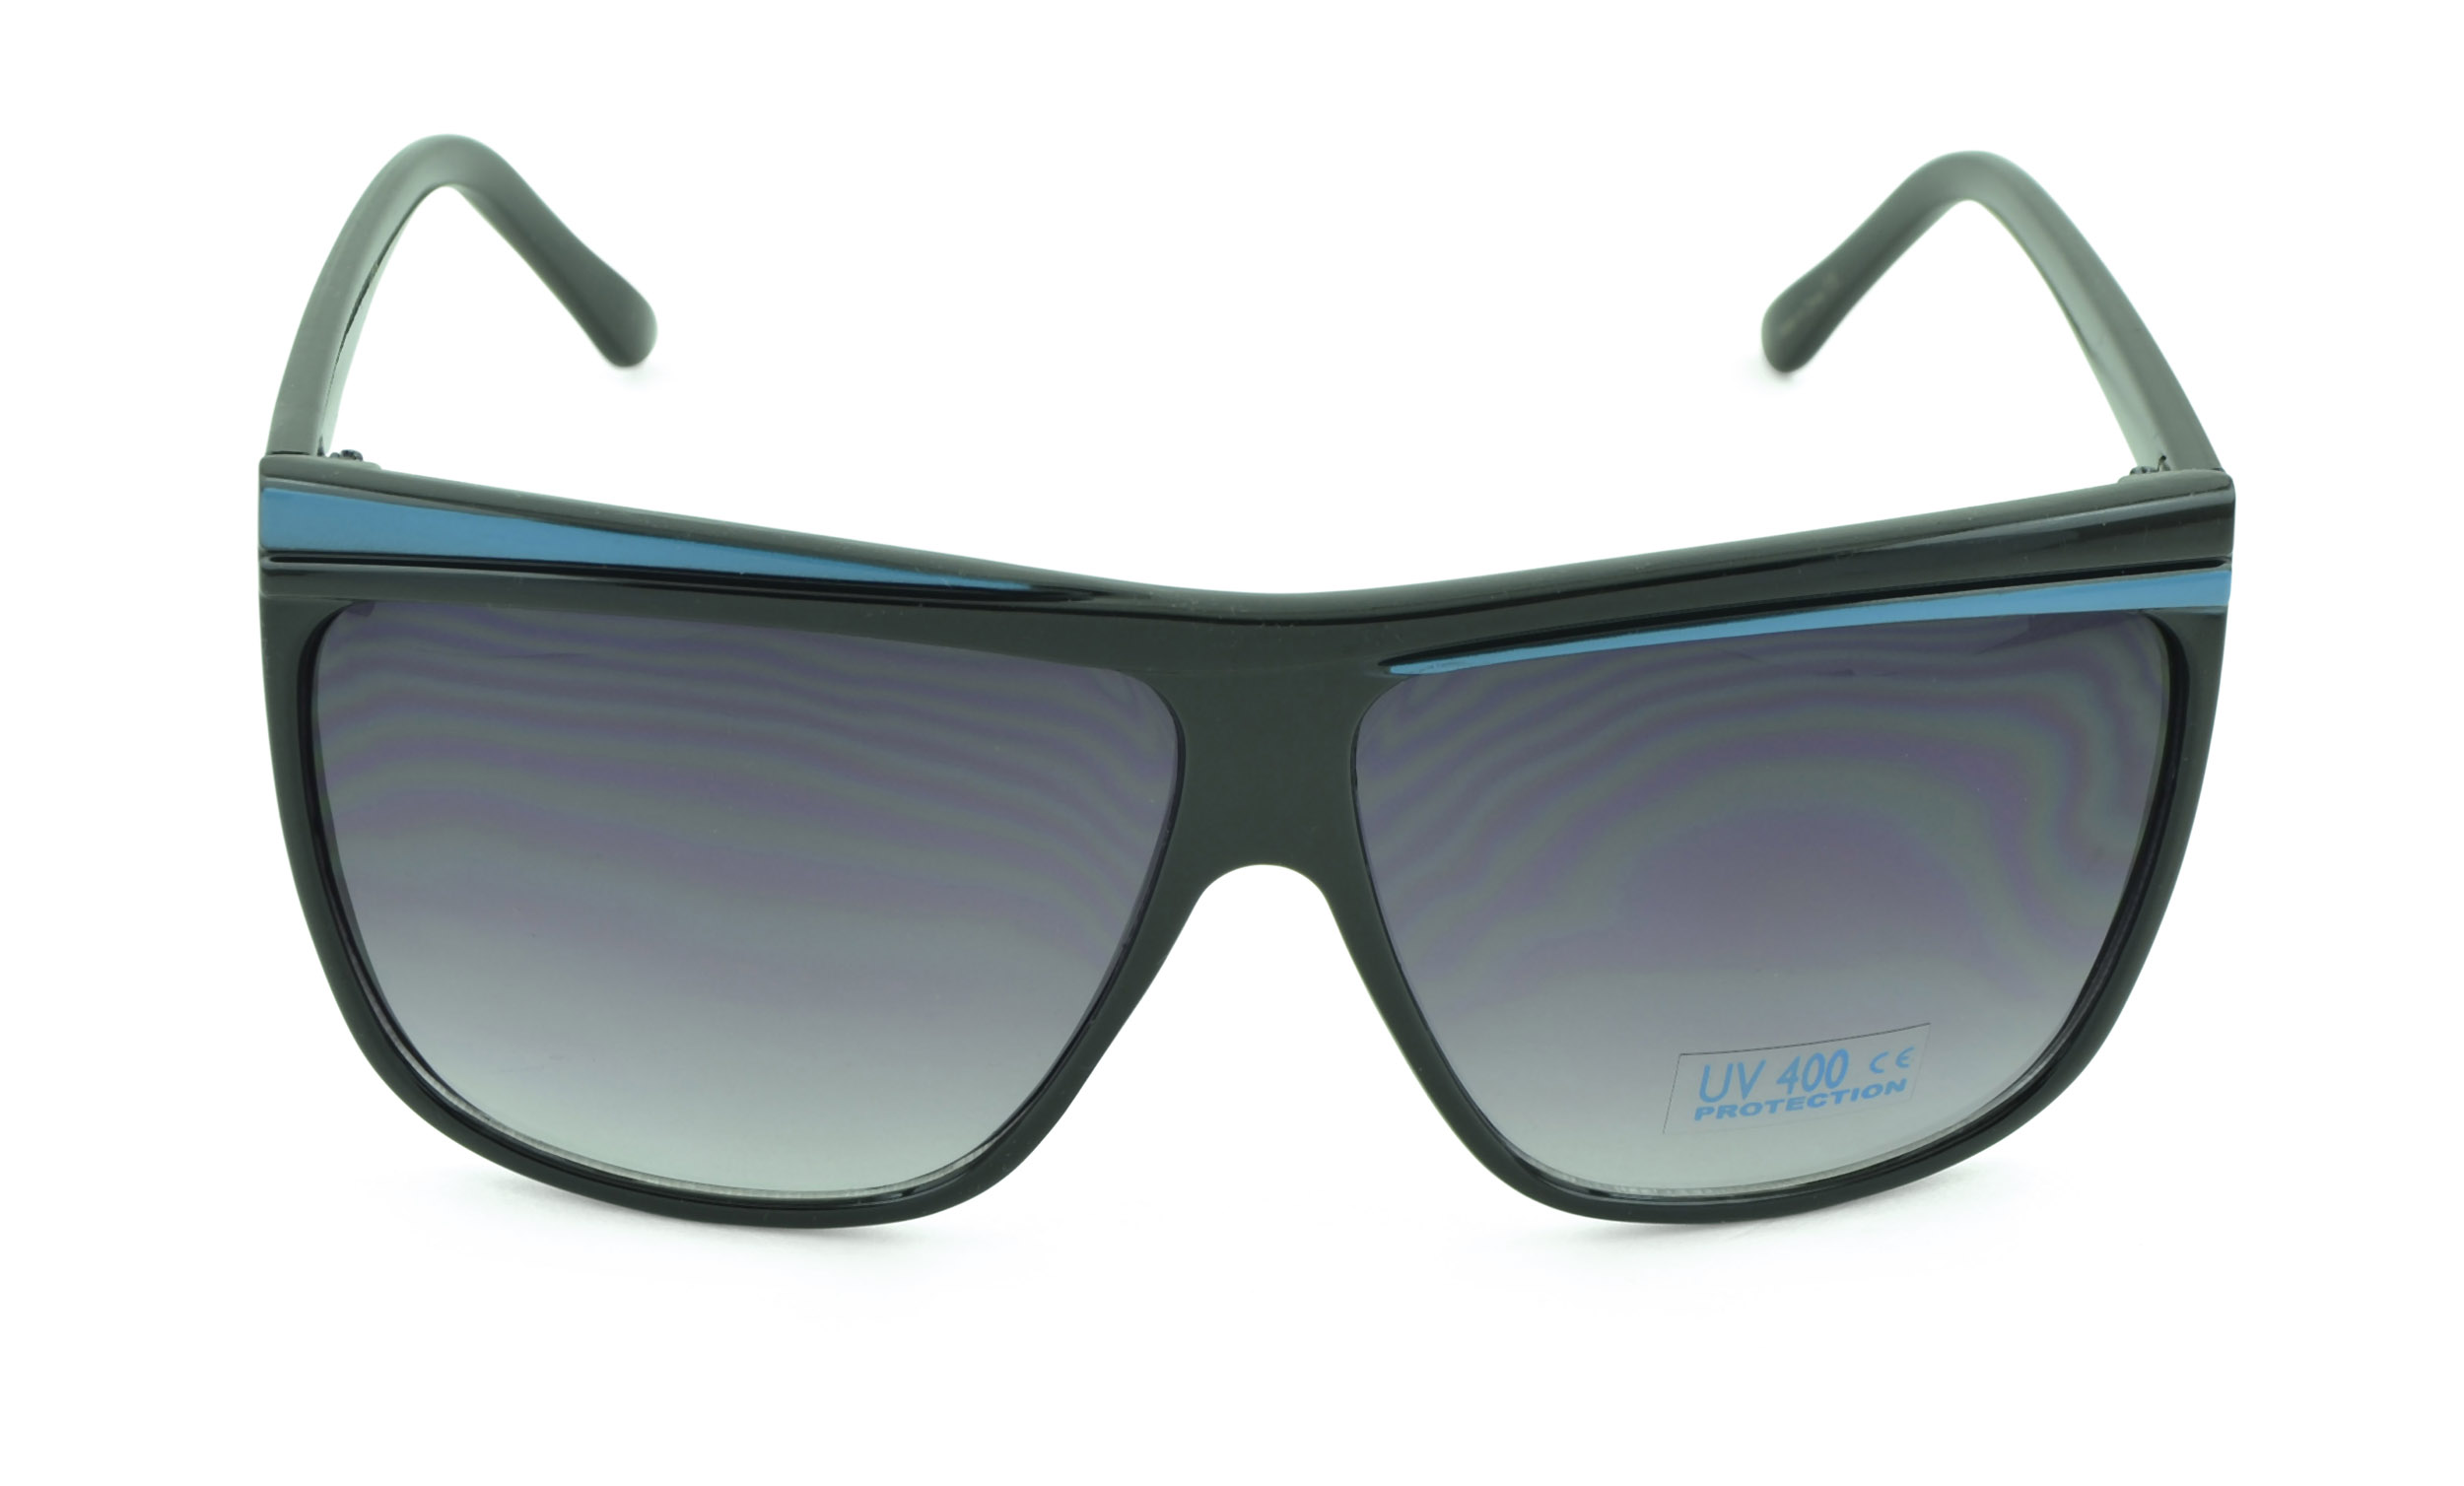 Belle Donne - Unisex Modern Bold Fashion UV Lens Sunglasses- Teal Accent